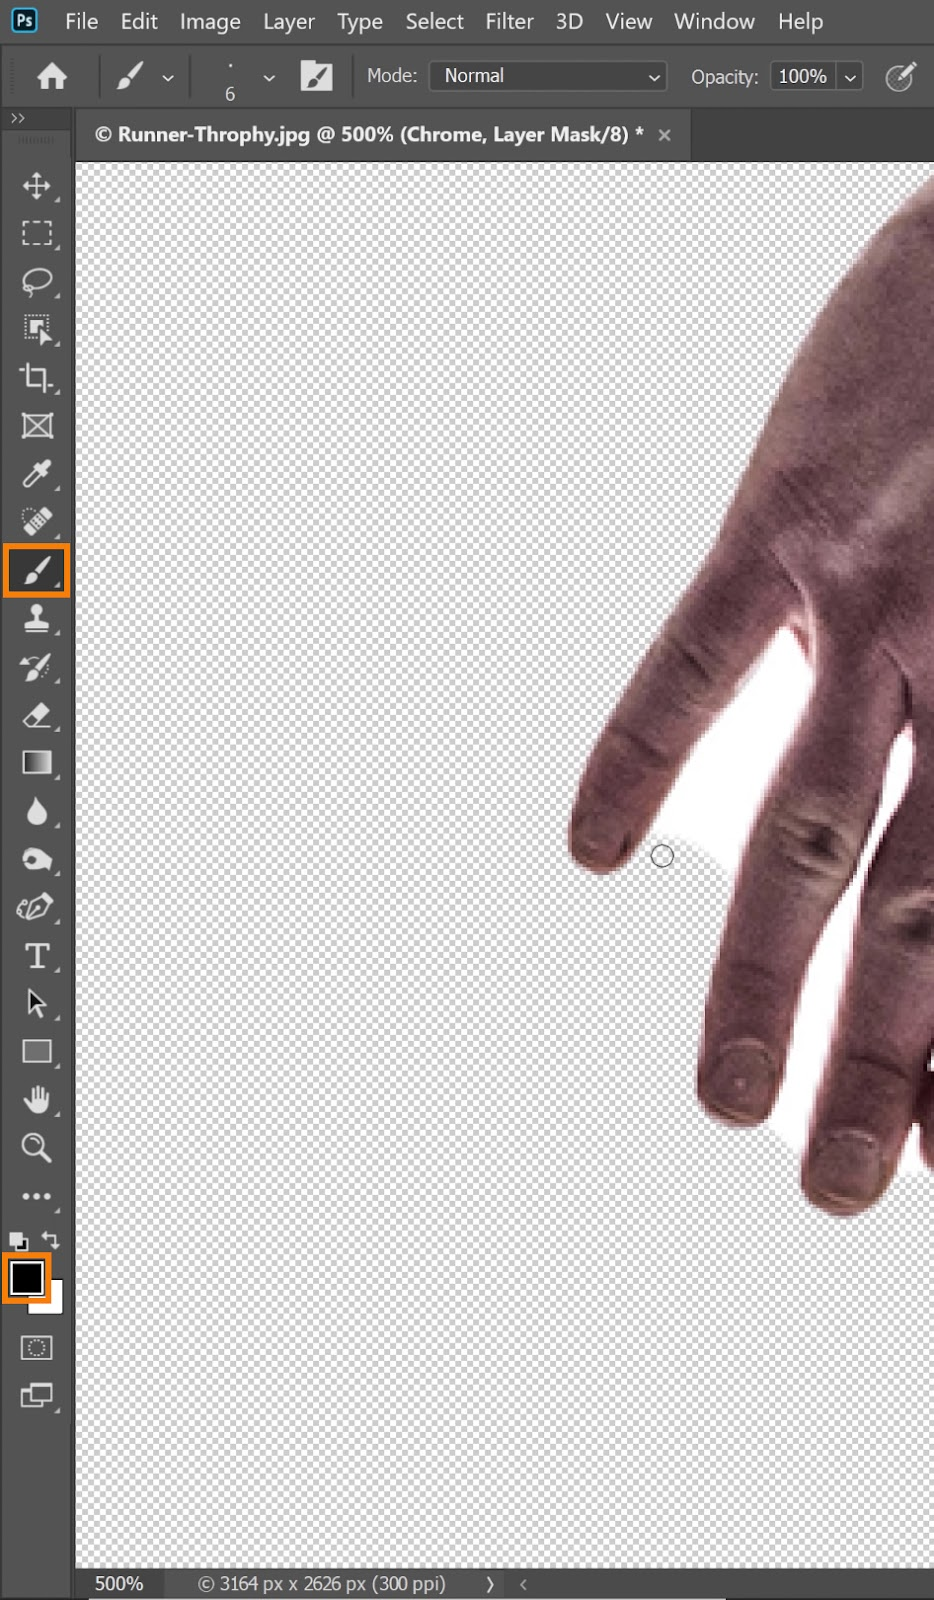 Select the Brush tool and setting black(#000000) as the Foreground color